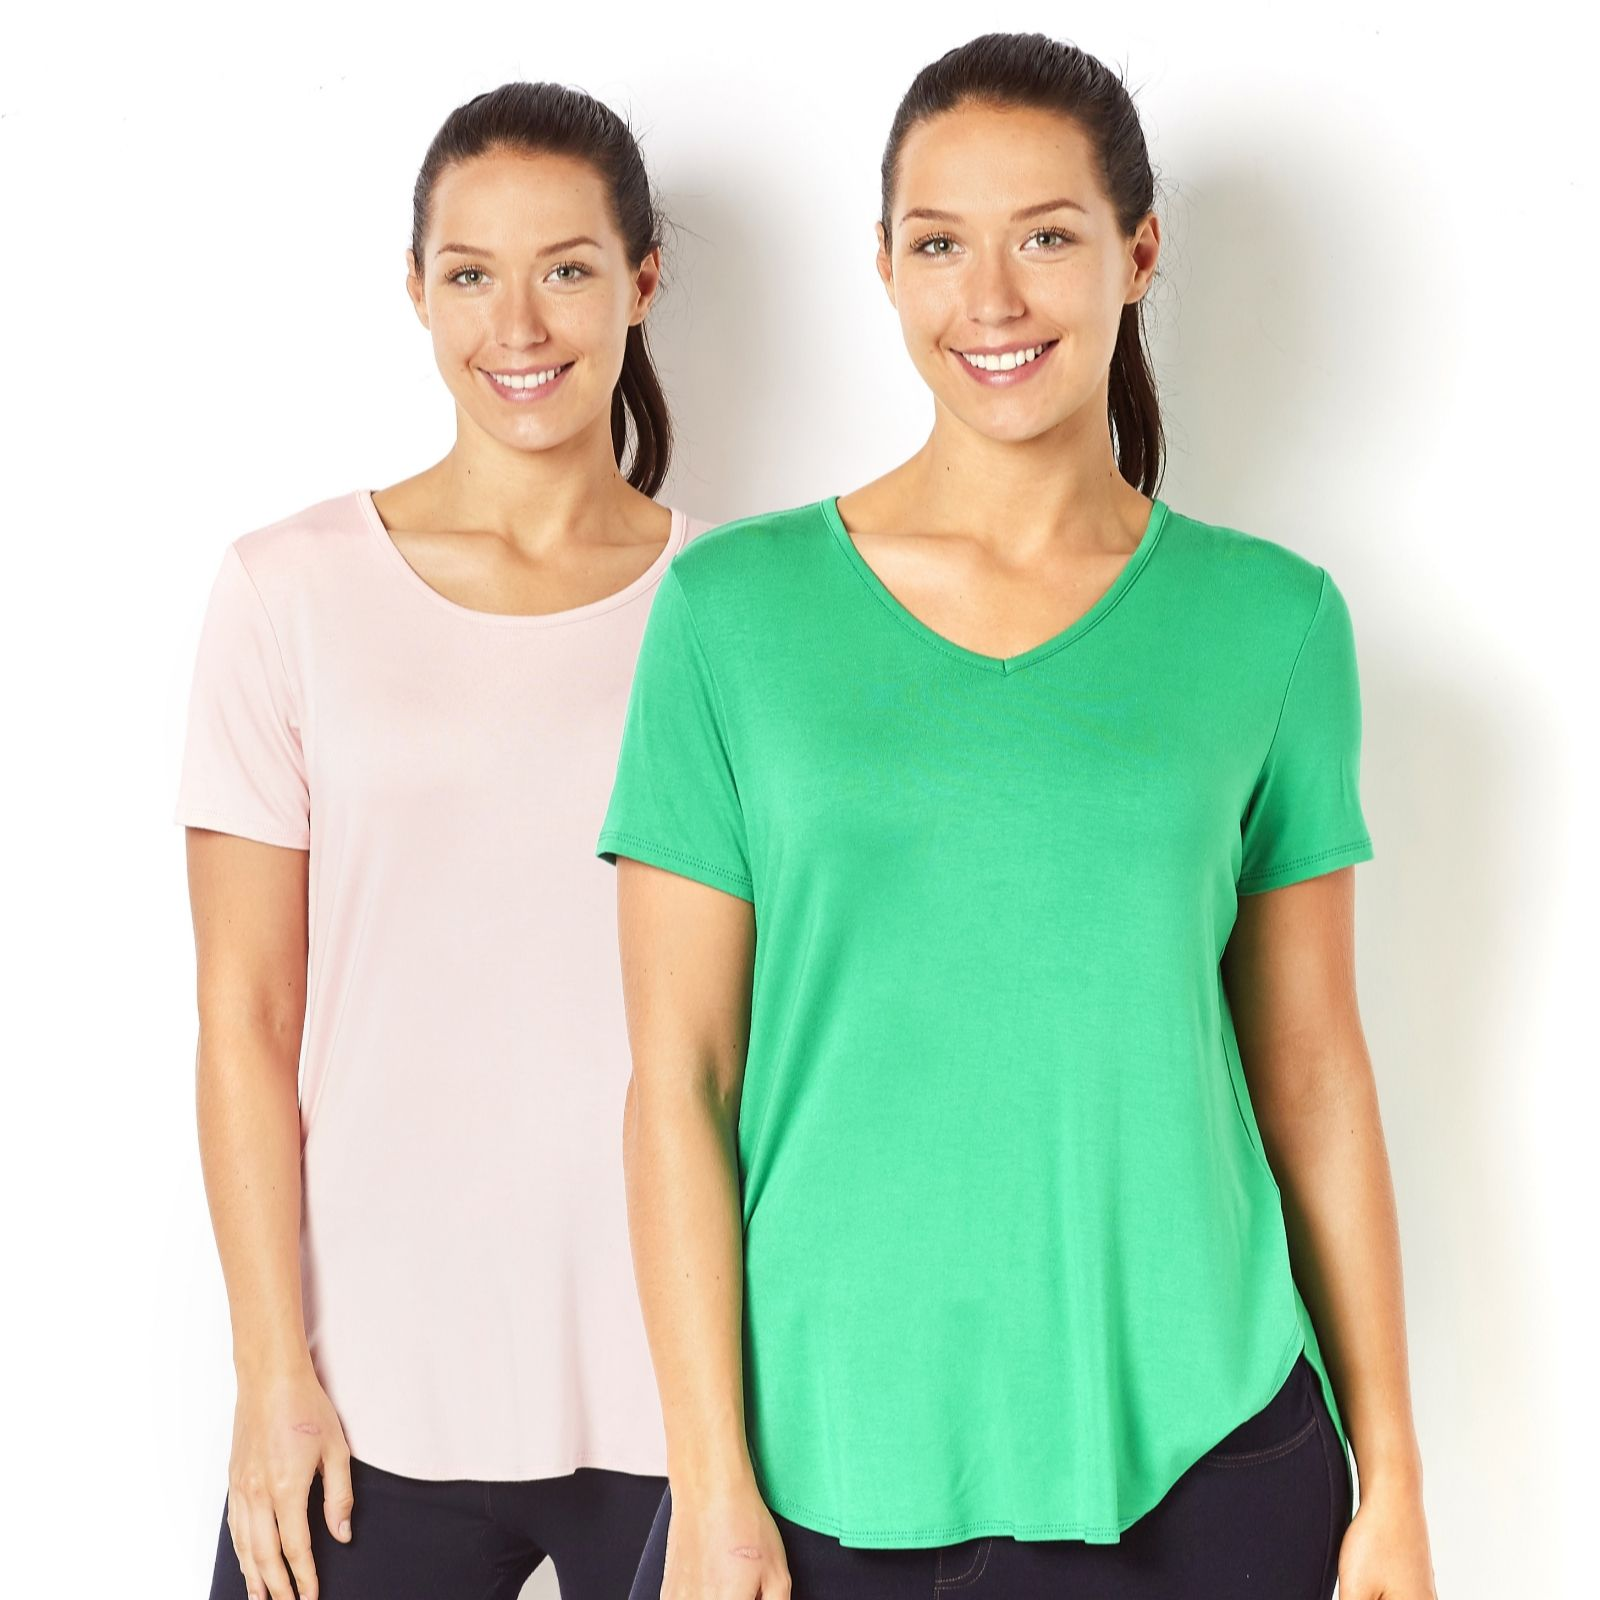 Shirt design with palazzo - Antthony Designs 2 Pack Of Short Sleeve Dipped Hem Tops 160100